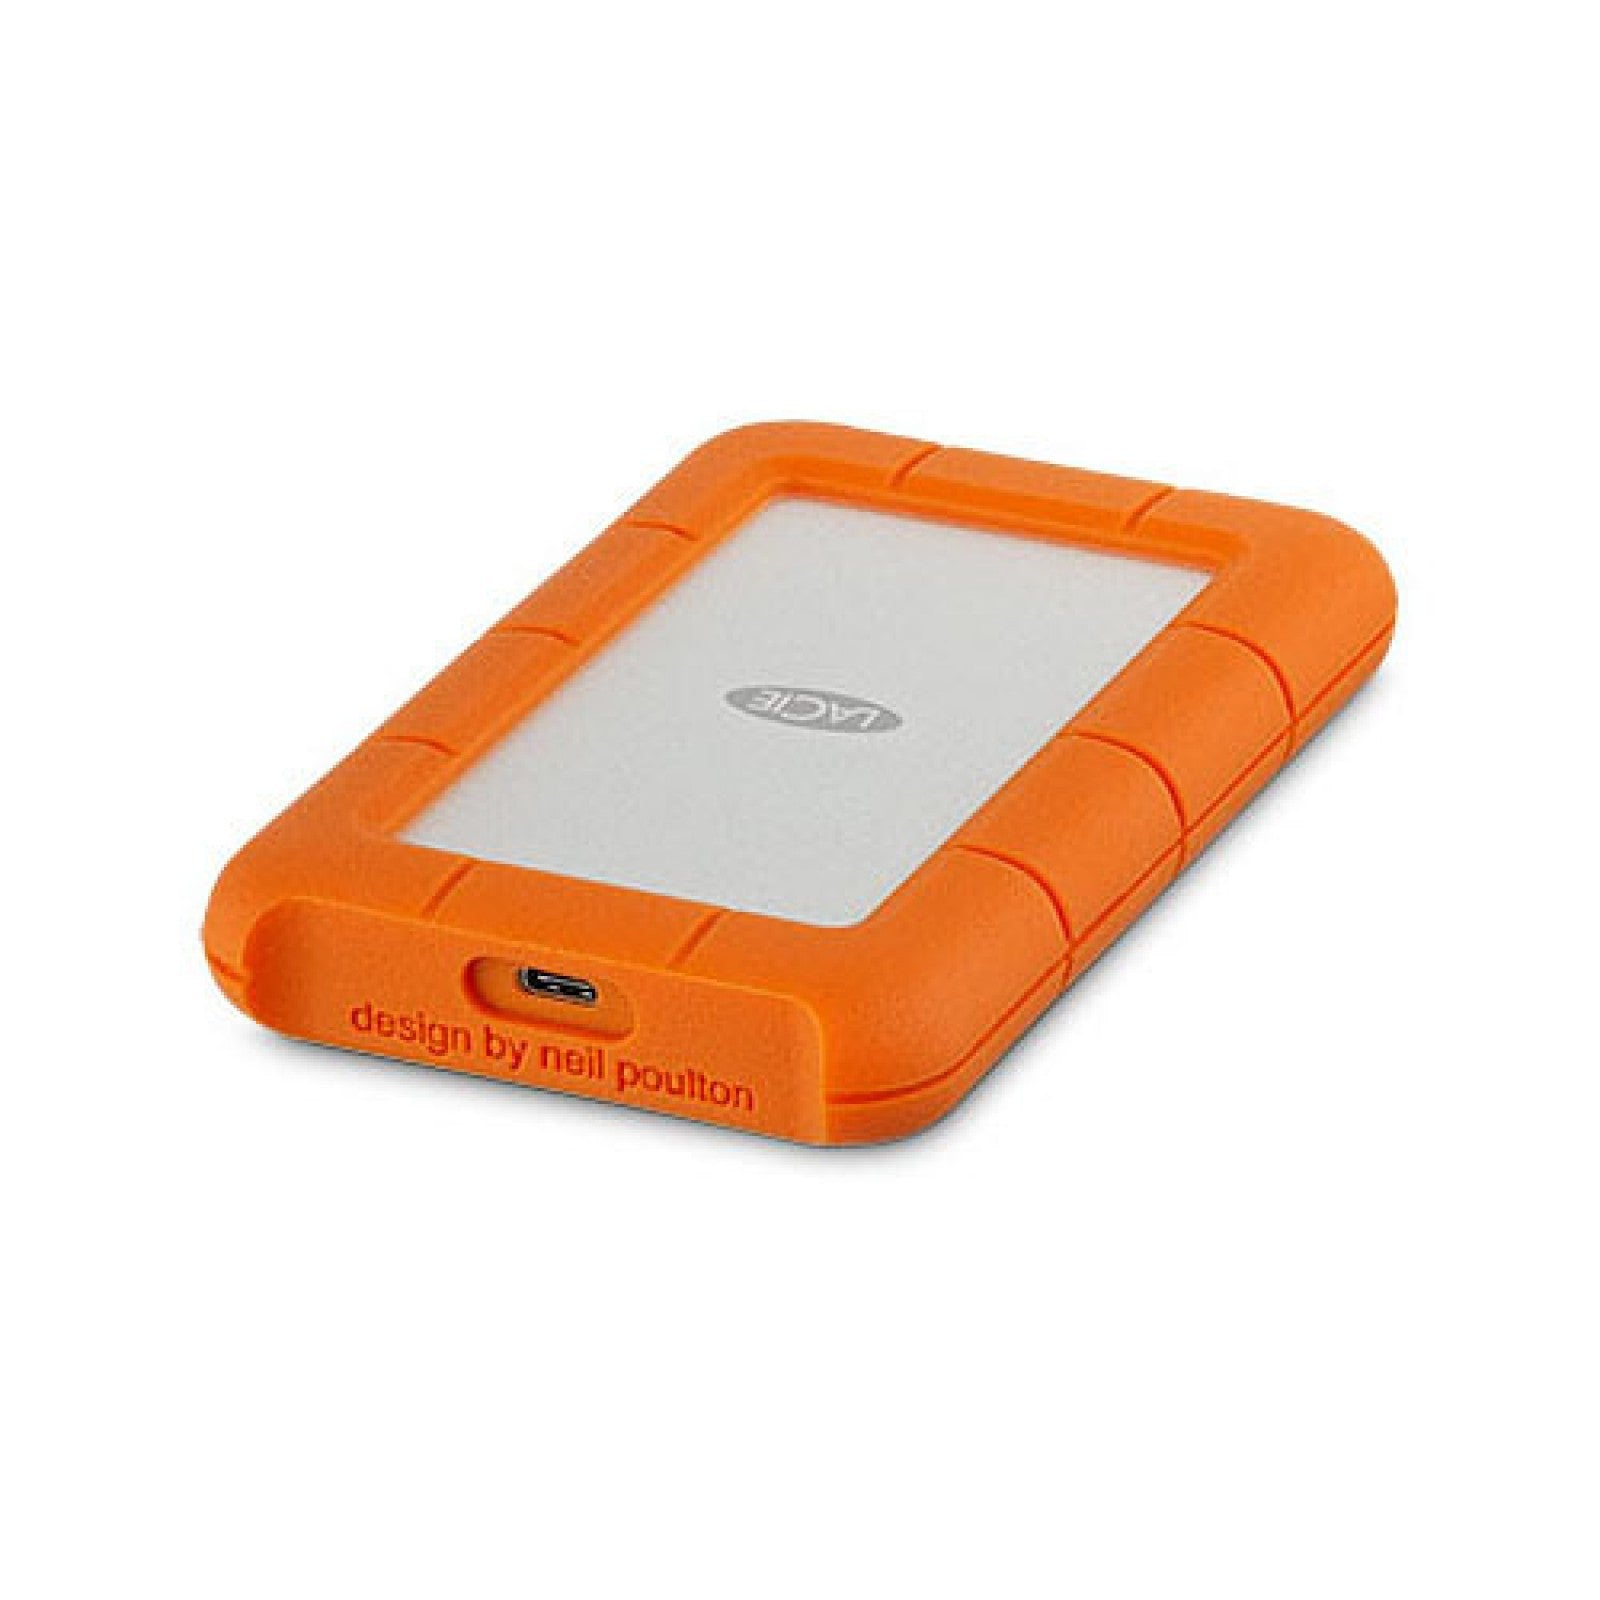 iStore memory pack LaCie Rugged USB-C 4TB Hard Drive